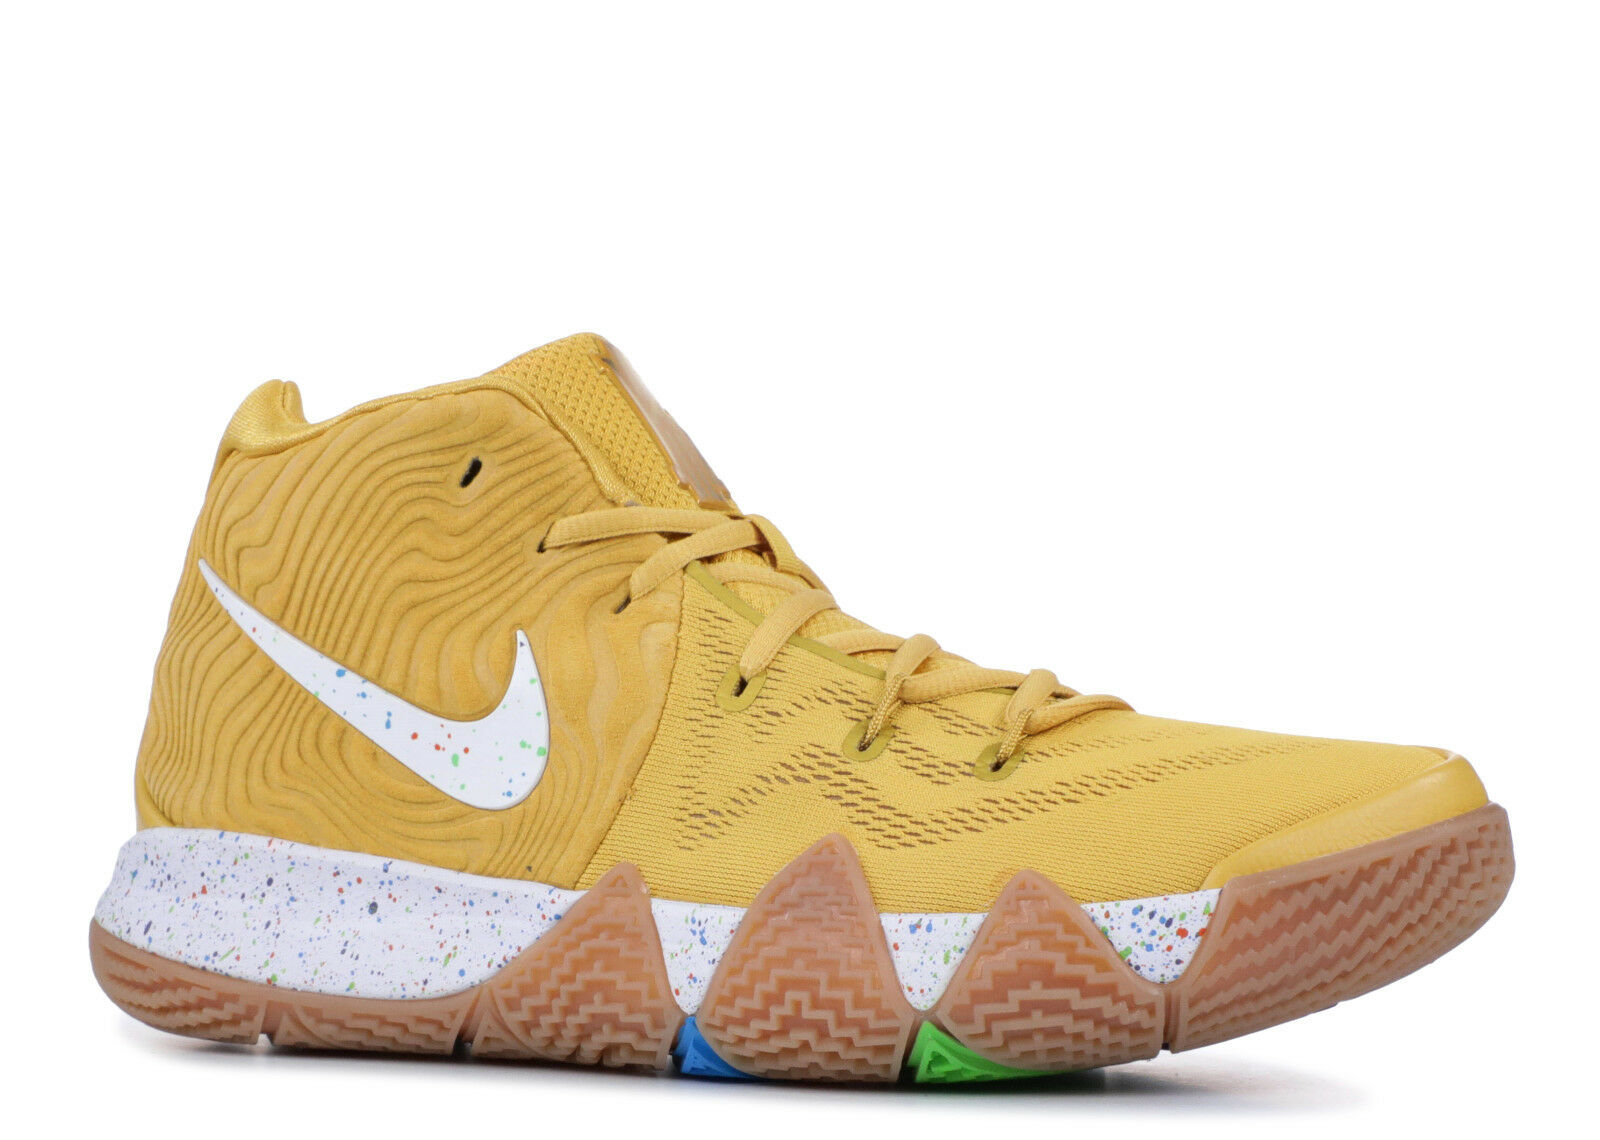 Kyrie 4 Ctc - Bv0426-900 - Size 8.5